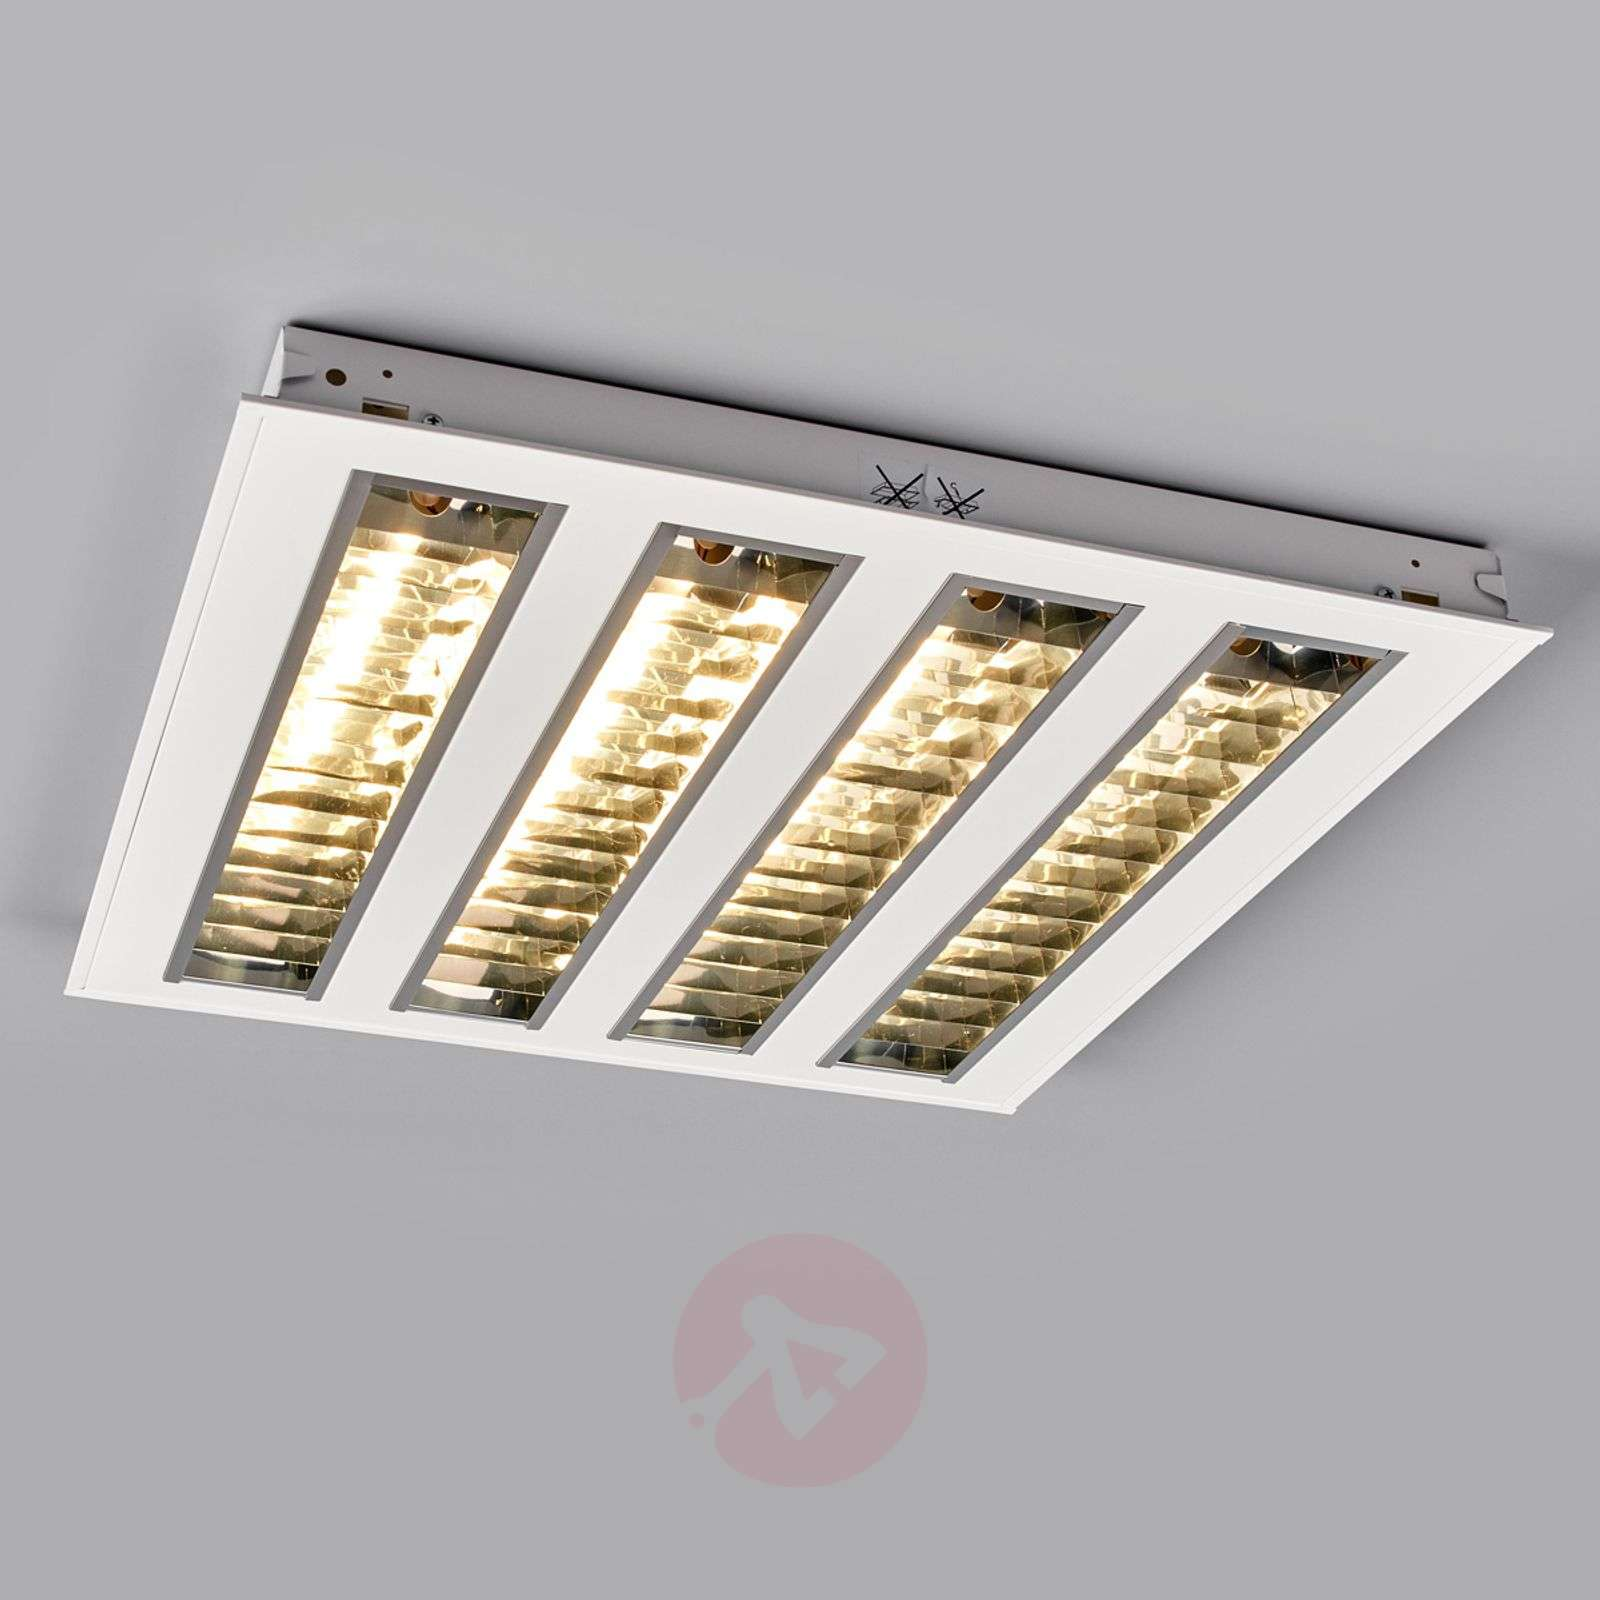 Plafoniera Led Da Incasso : Acquista plafoniera led da incasso con 4 schermi lampade.it